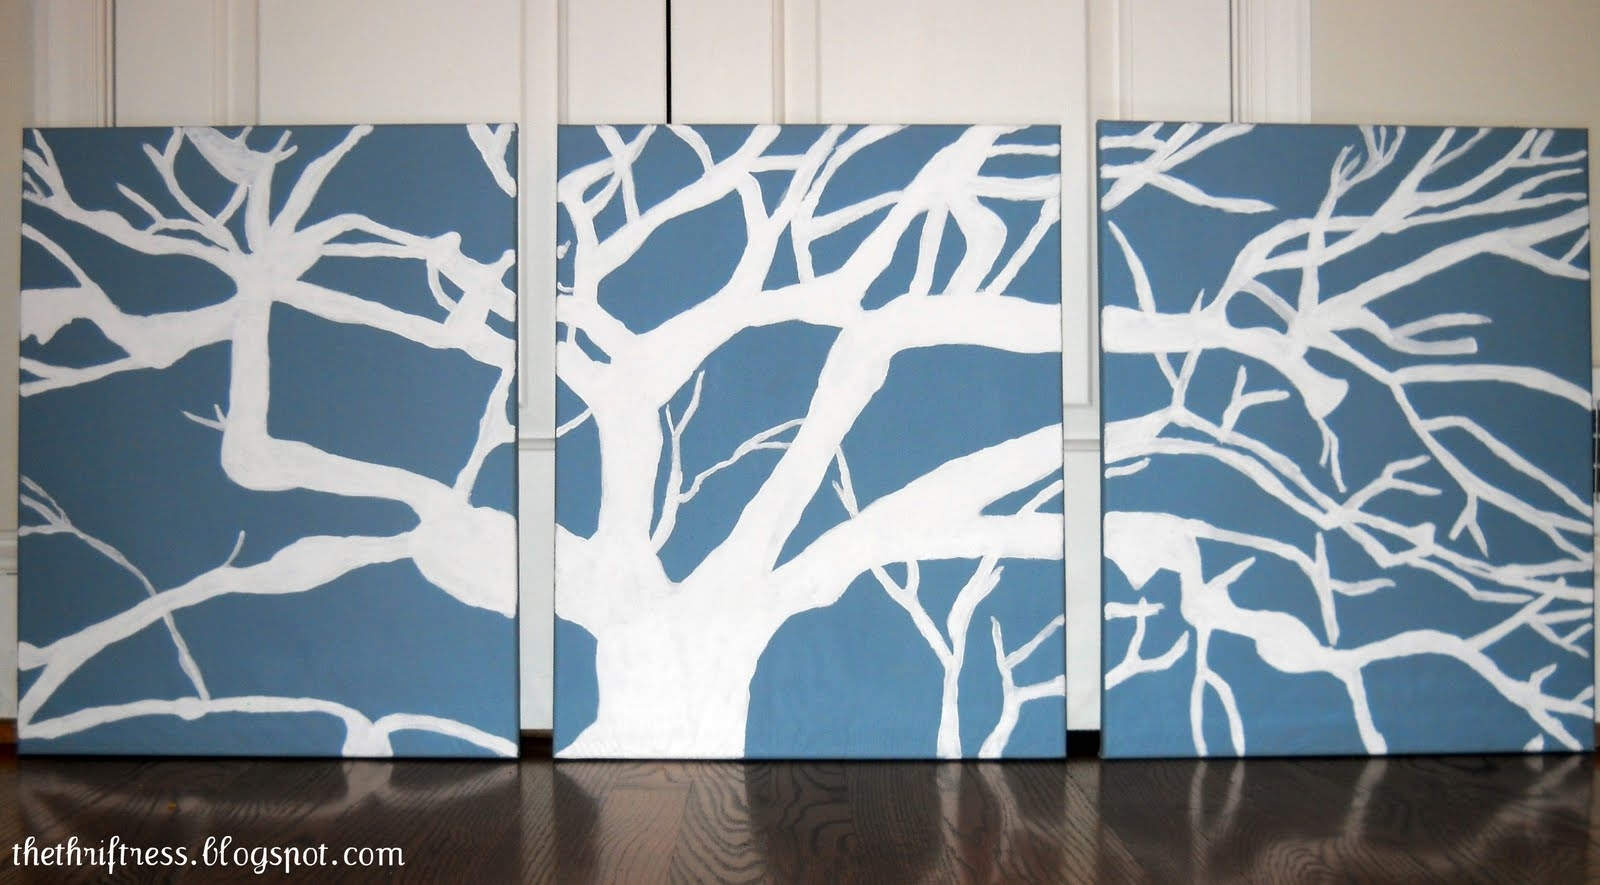 Diy Wall Art Stencils Paint Fabric - Dma Homes | #37854 pertaining to Most Current Large Modern Fabric Wall Art